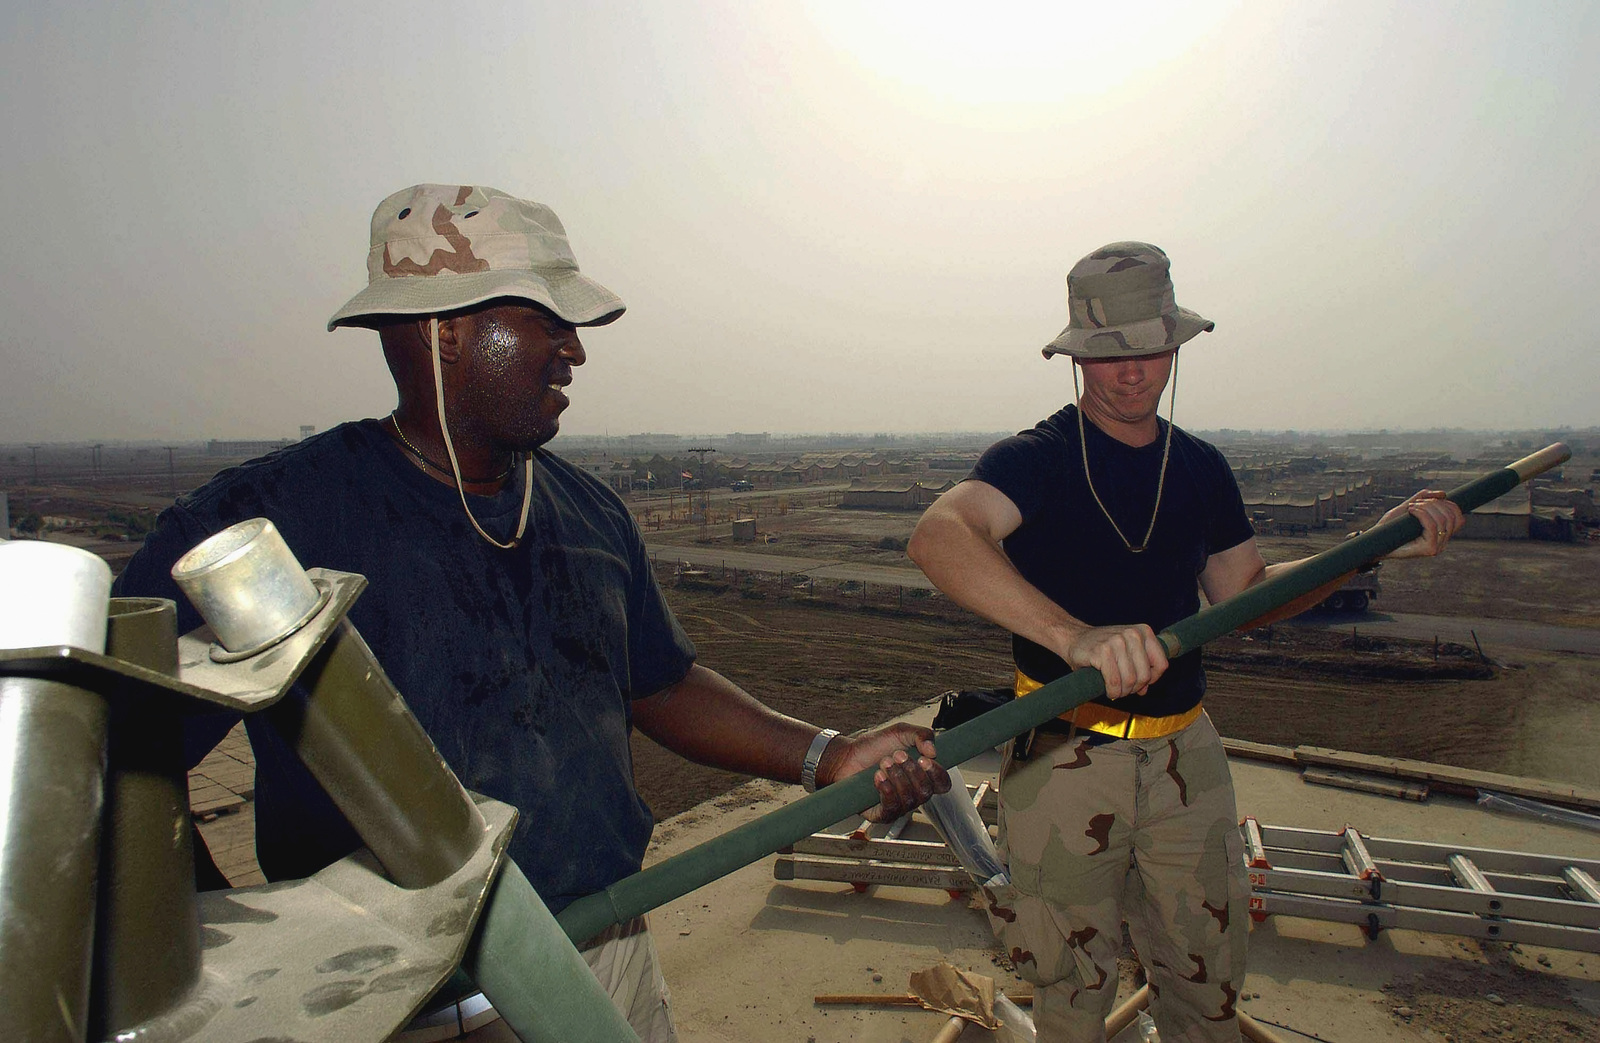 US Air Force (USAF) STAFF Sergeant (SSGT) Russ Smith (left) and USAF SSGT Keith Durant, both Ground Radio Maintenance Technicians assigned with the 438th Expeditionary Communications Flight (ECF), work to install a GRA-4 Motorola Antenna mast while deployed at a forward location in support of Operation ENDURING FREEDOM